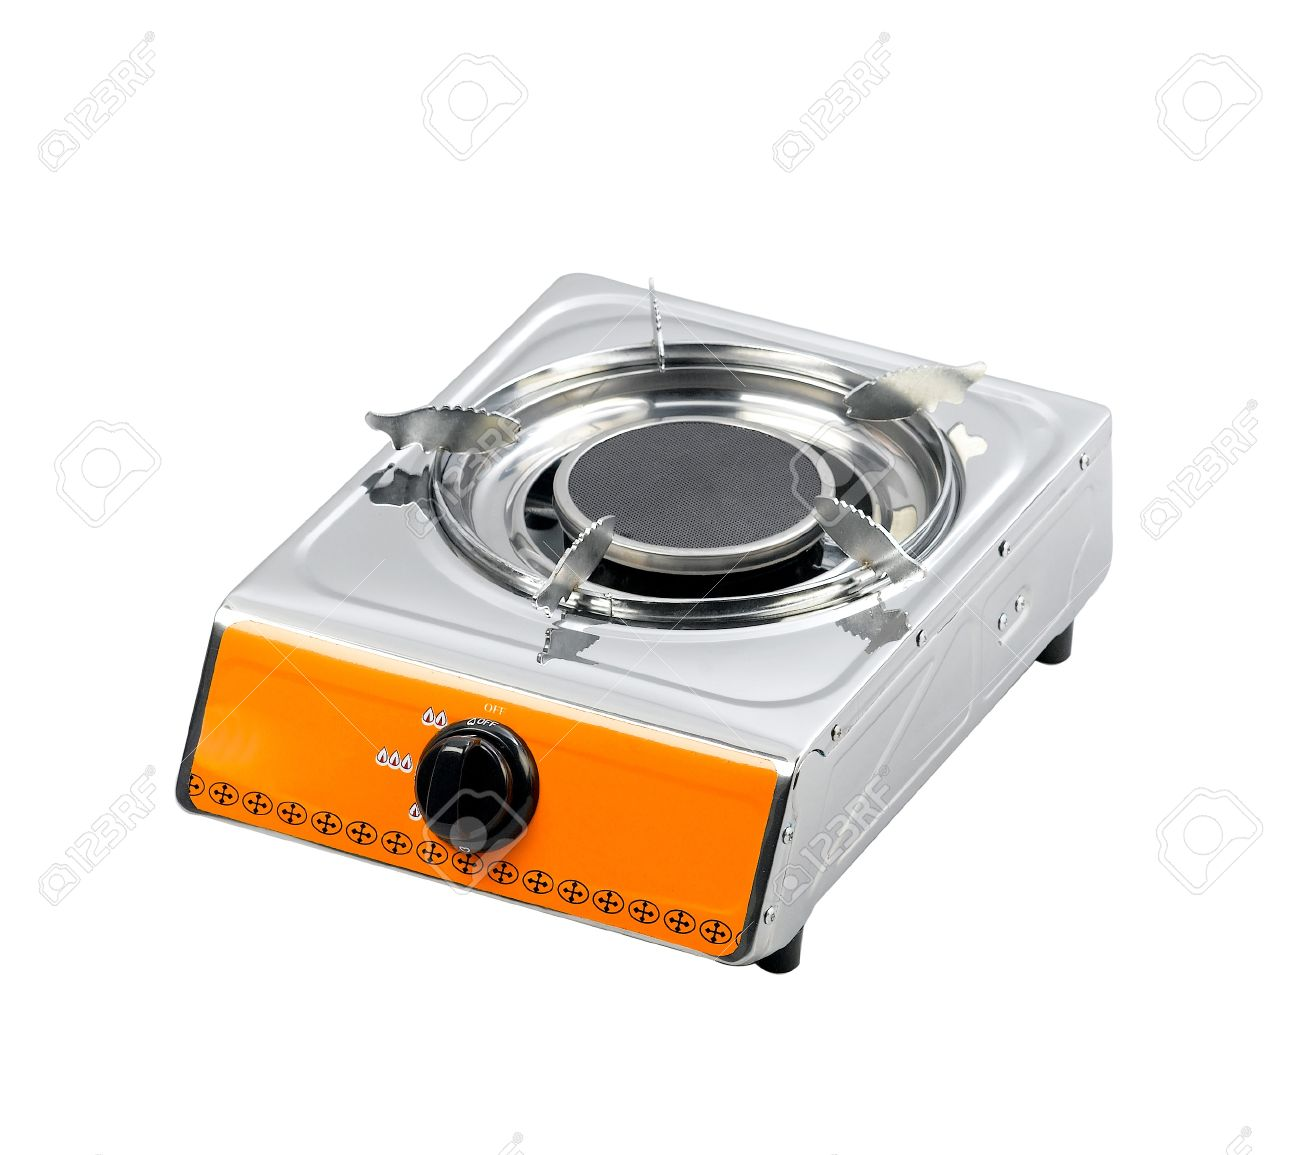 Portable Gas Stove For Small Family Isolated Stock Photo   15755920